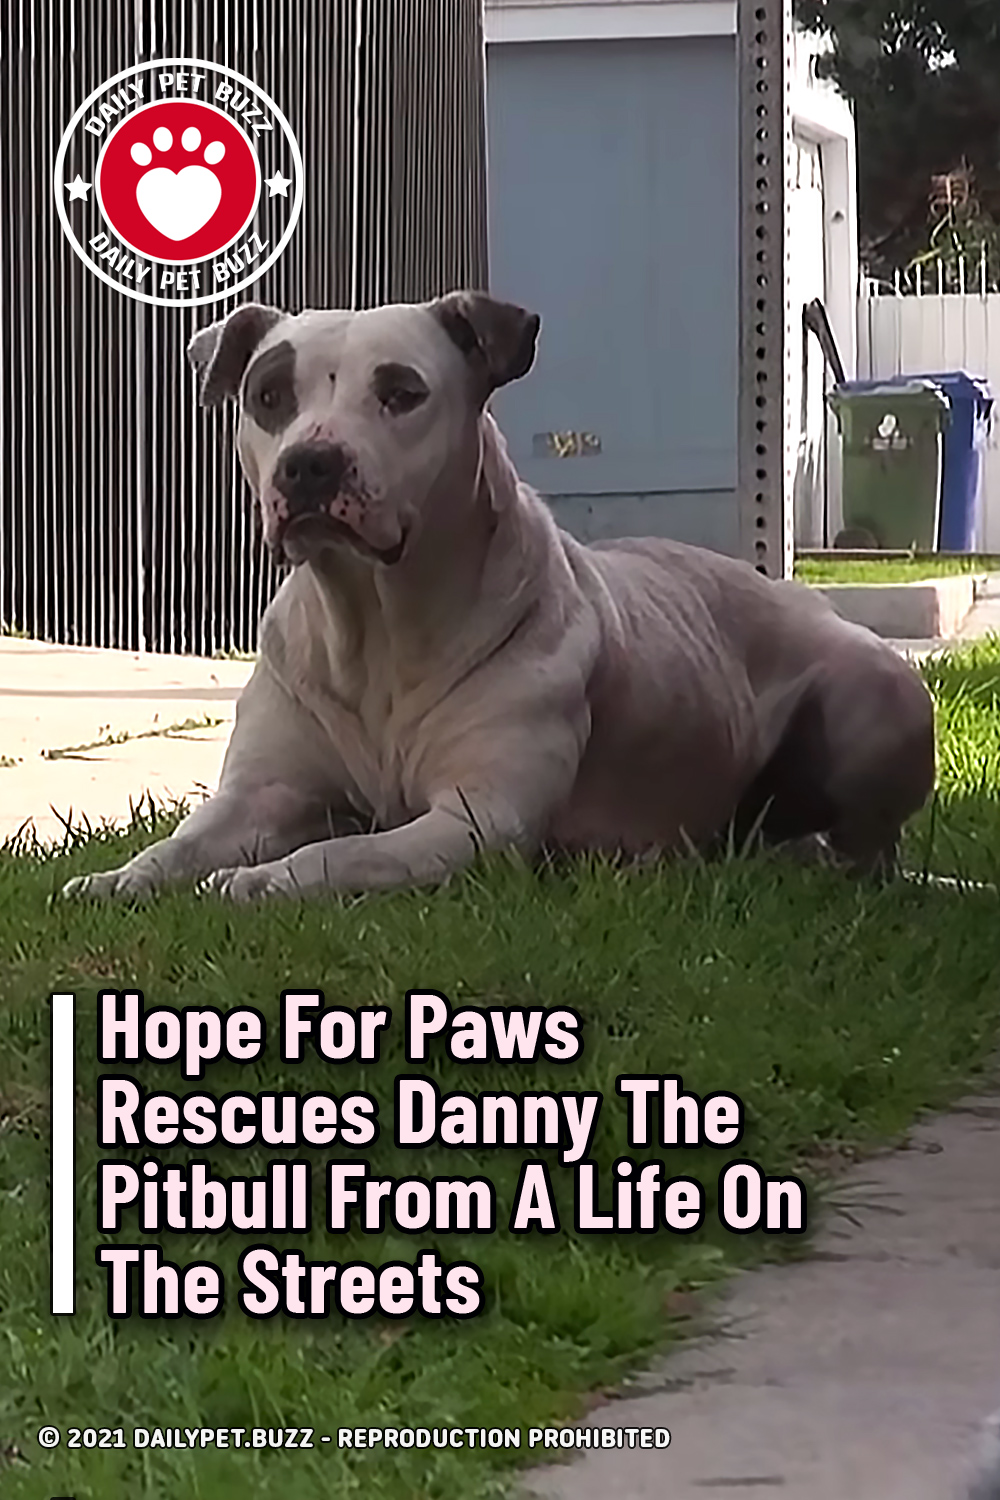 Hope For Paws Rescues Danny The Pitbull From A Life On The Streets